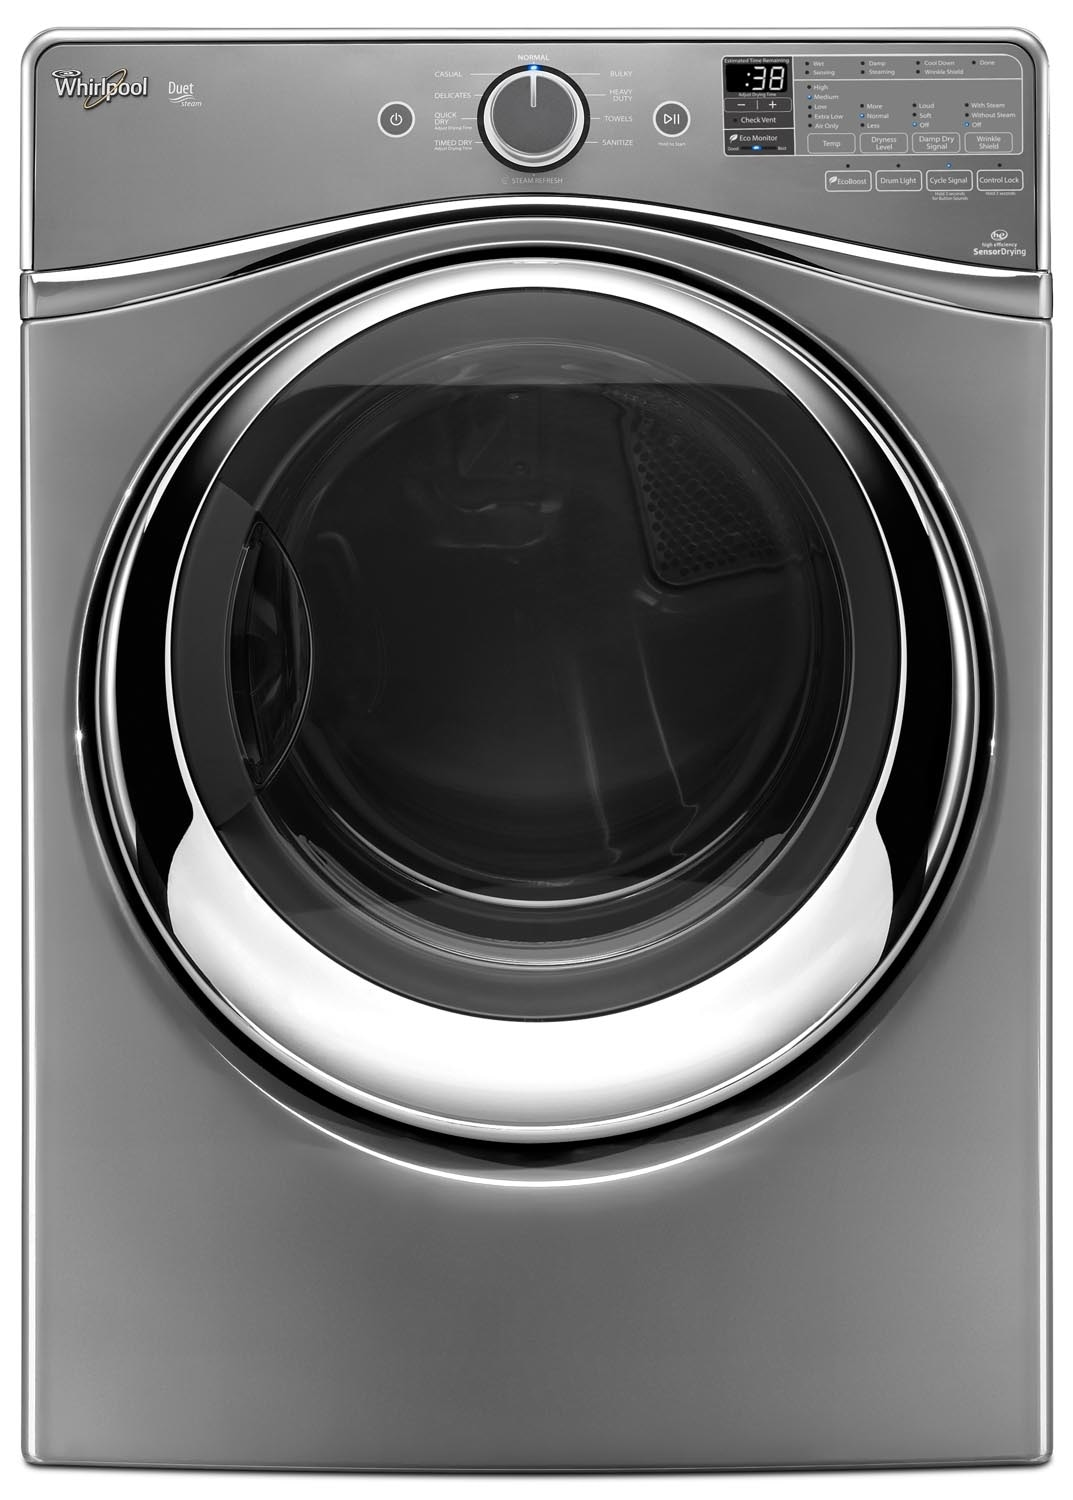 Whirlpool Dryer (7.3 Cu. Ft.) YWED95HEDC